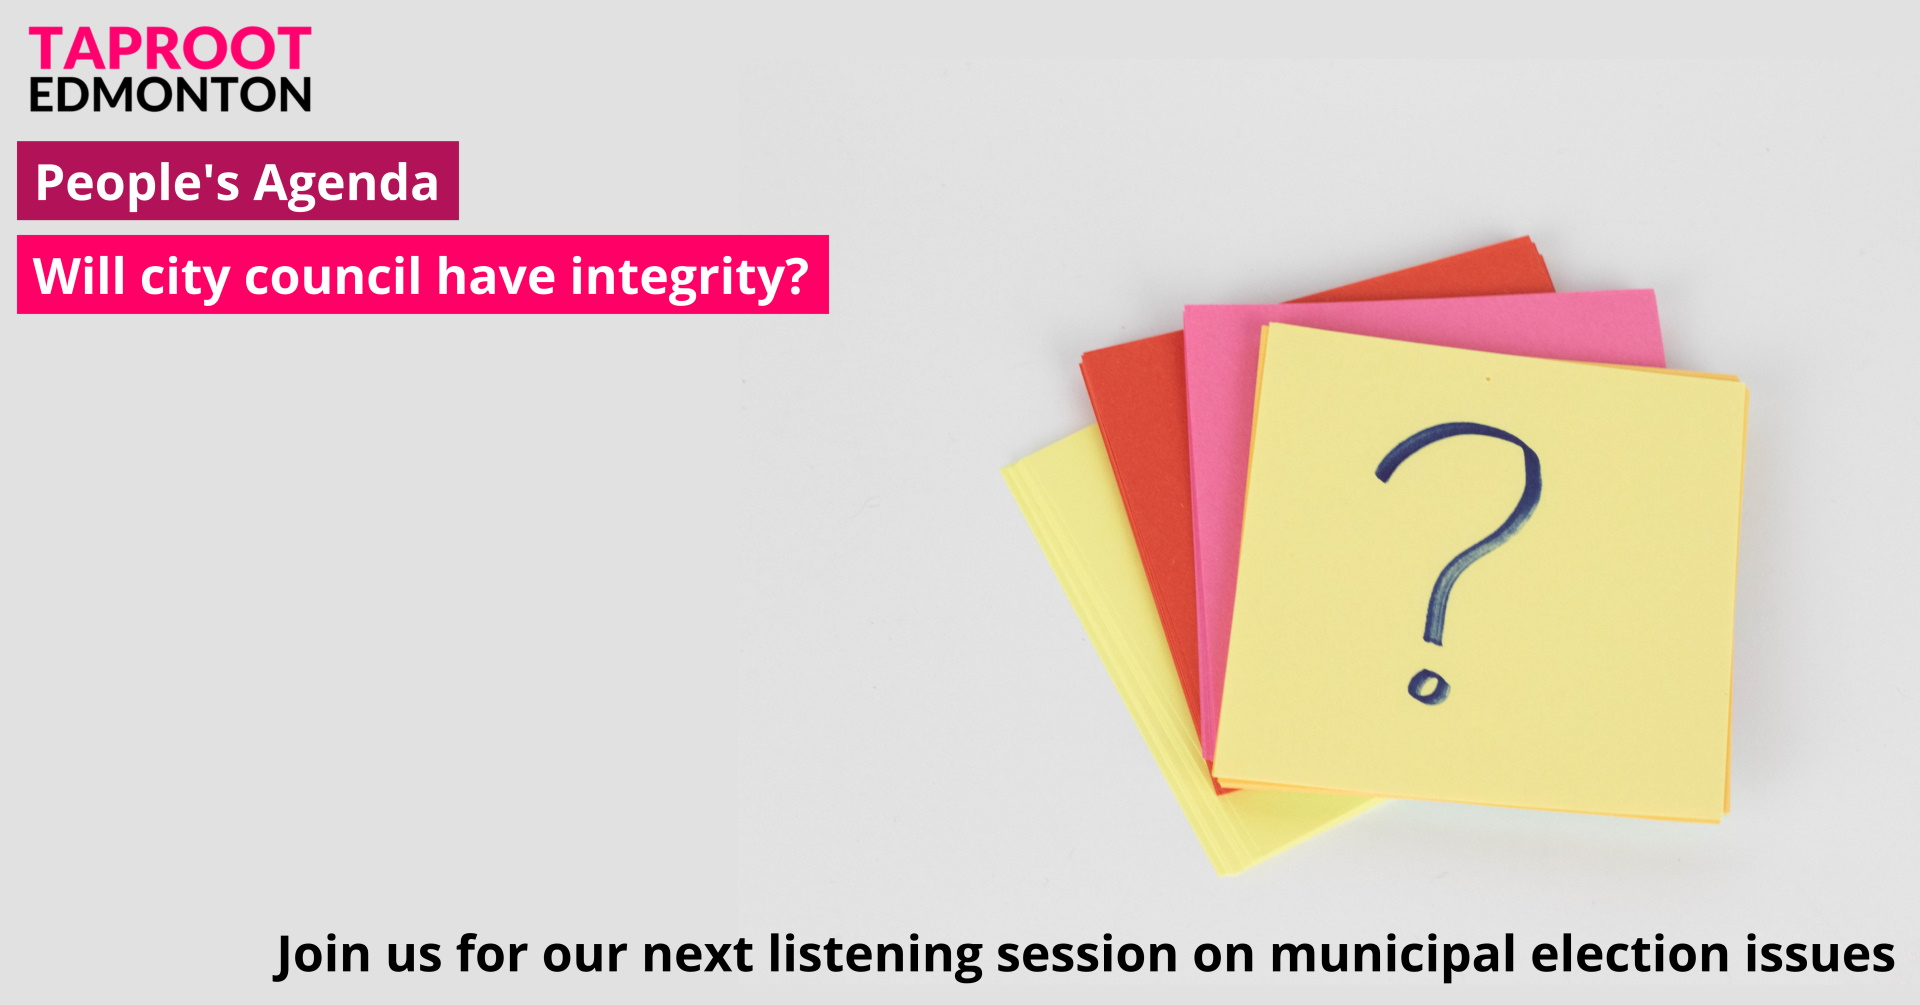 Share your thoughts about municipal politics on March 25